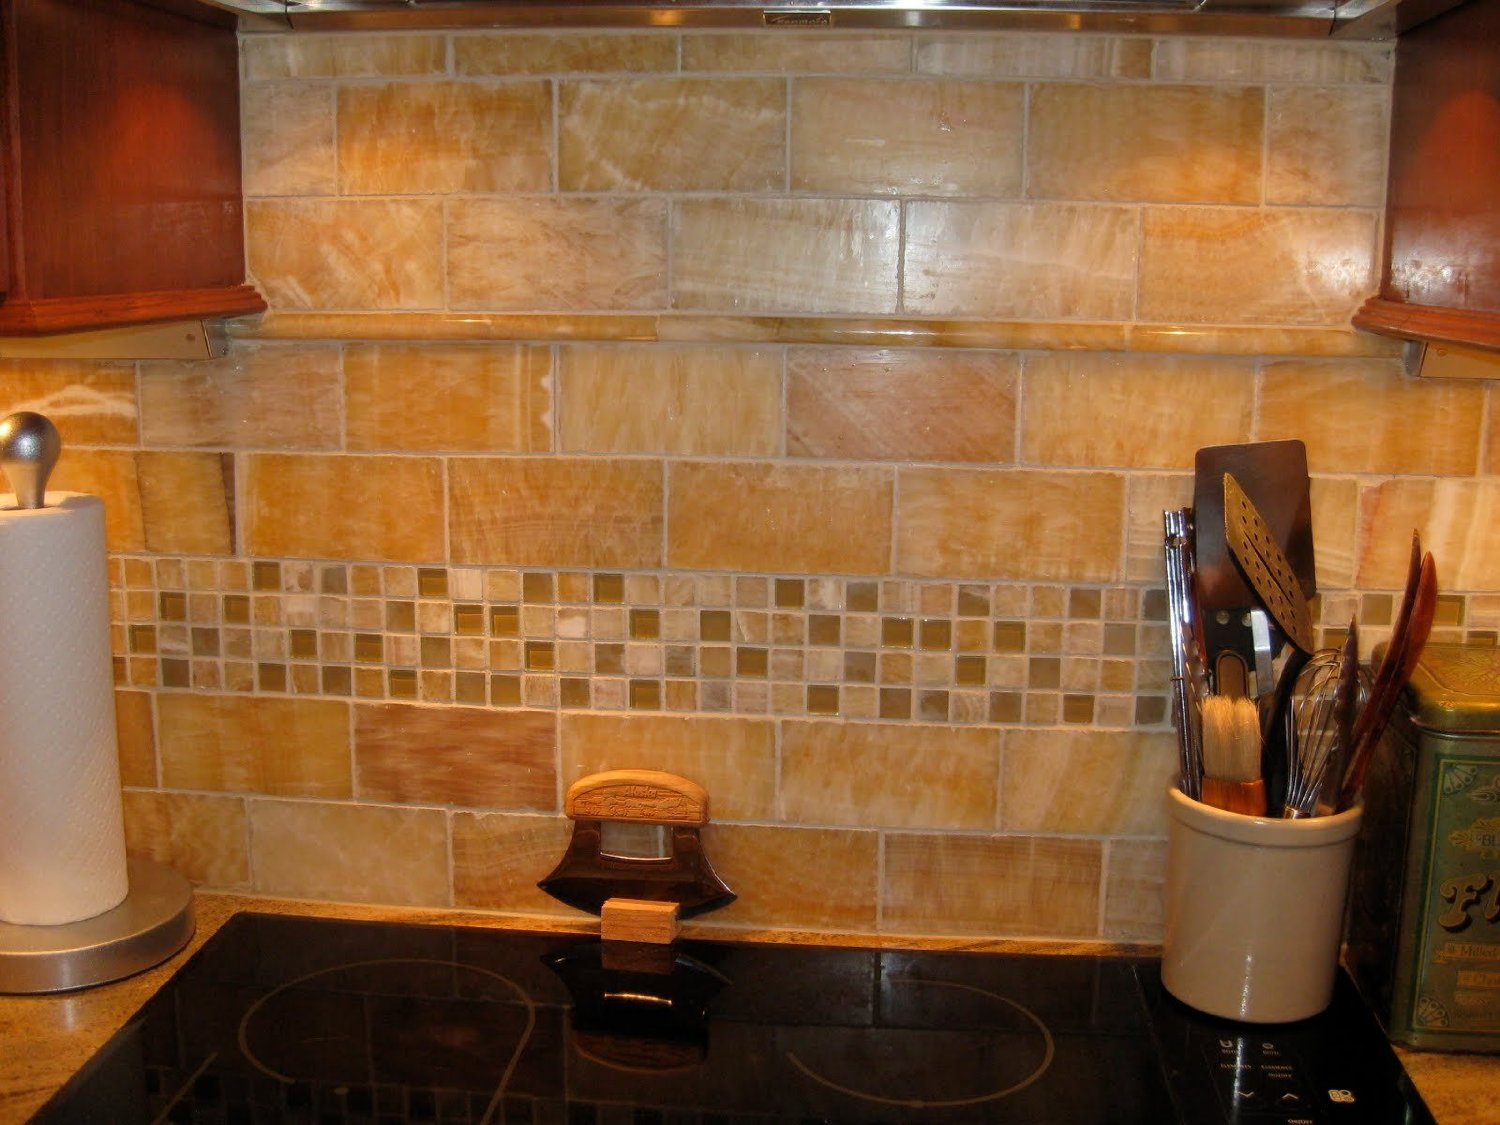 onyx kitchen backsplash wall pictures tile the home guide